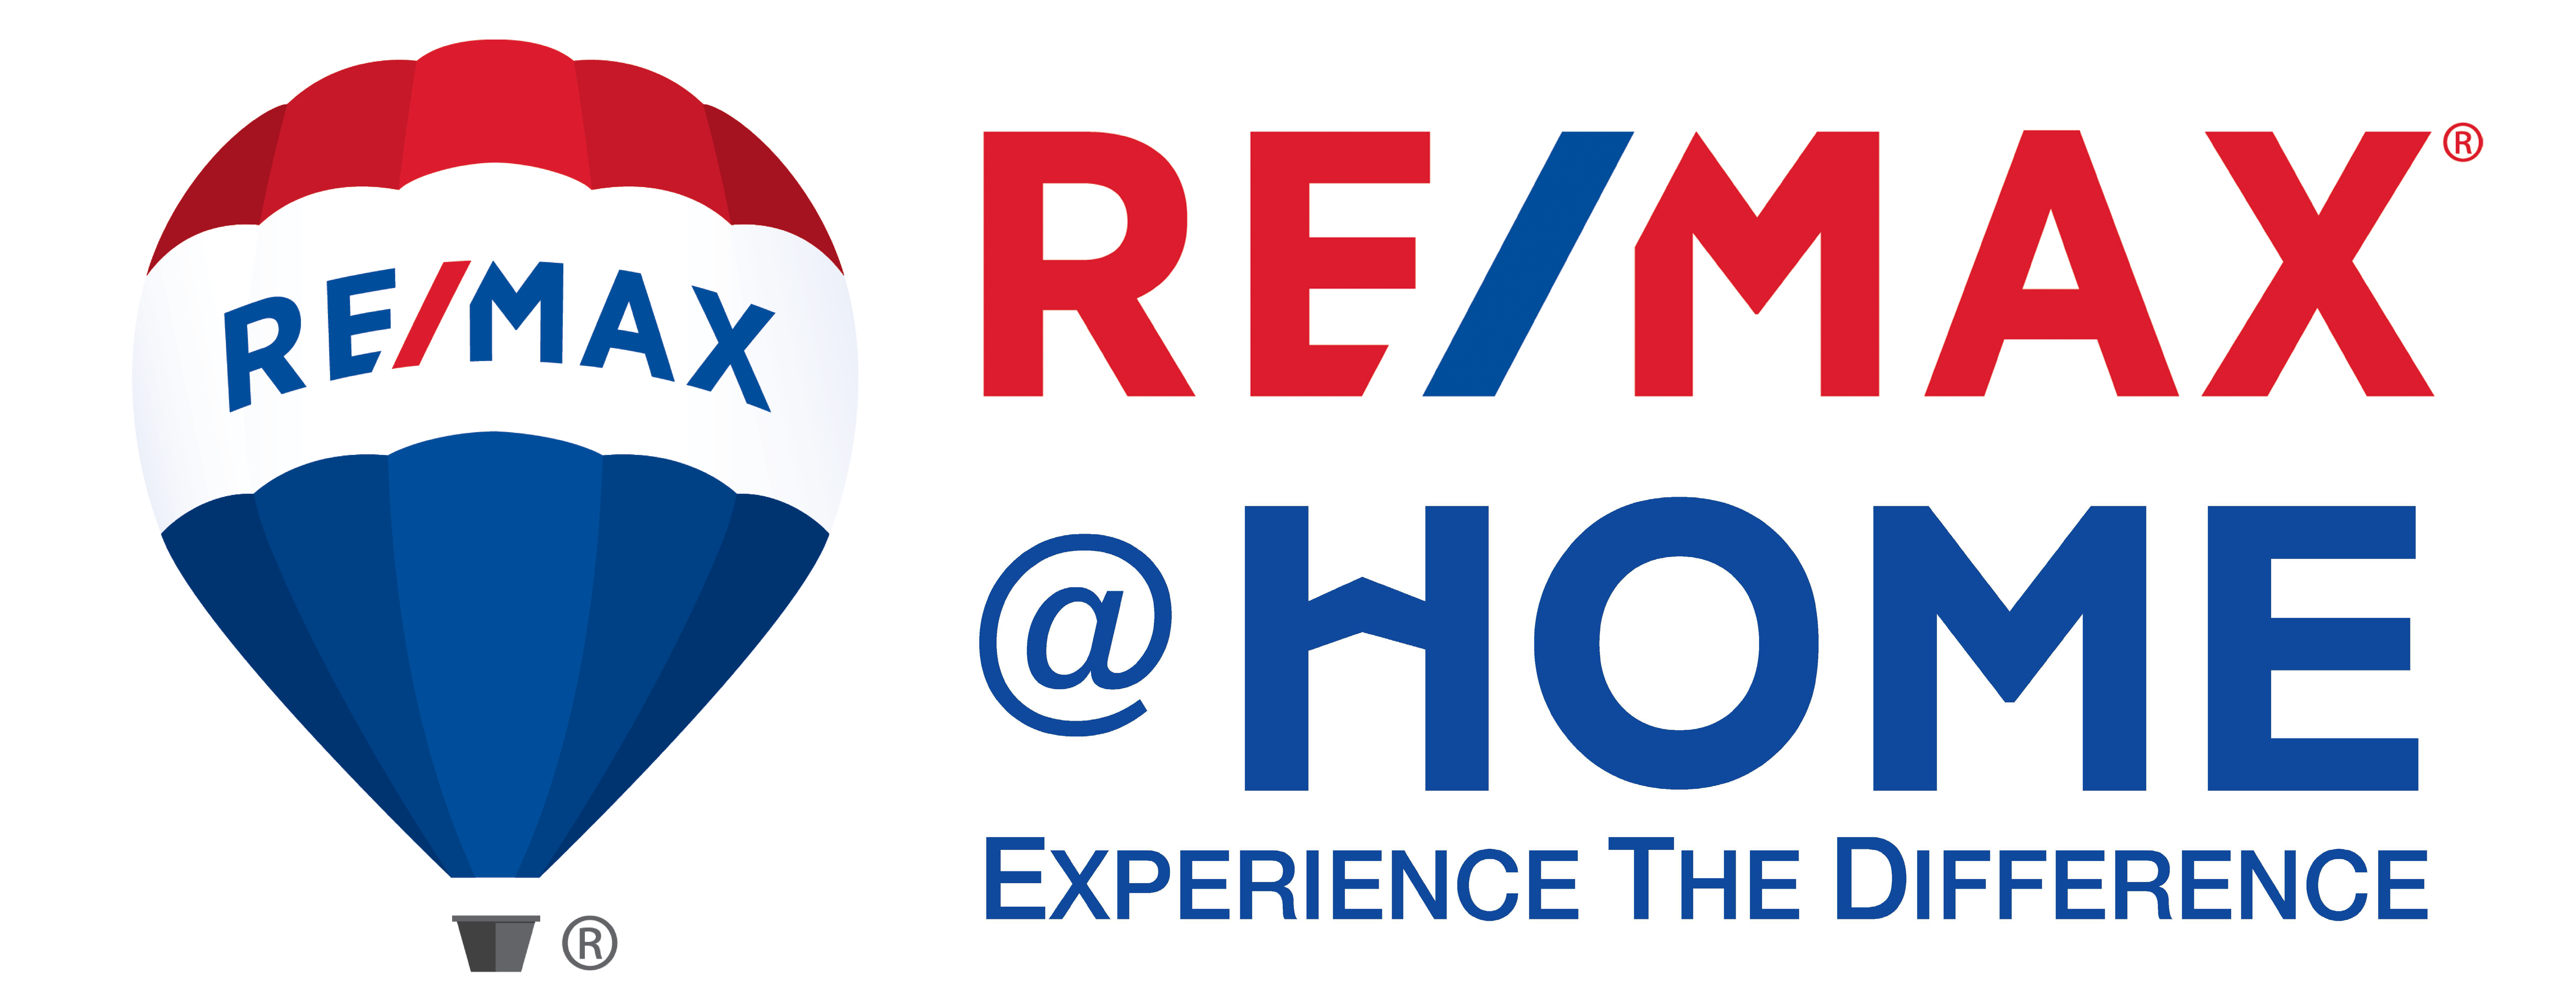 Maria Quattrone & Associates | RE/MAX @ HOME logo